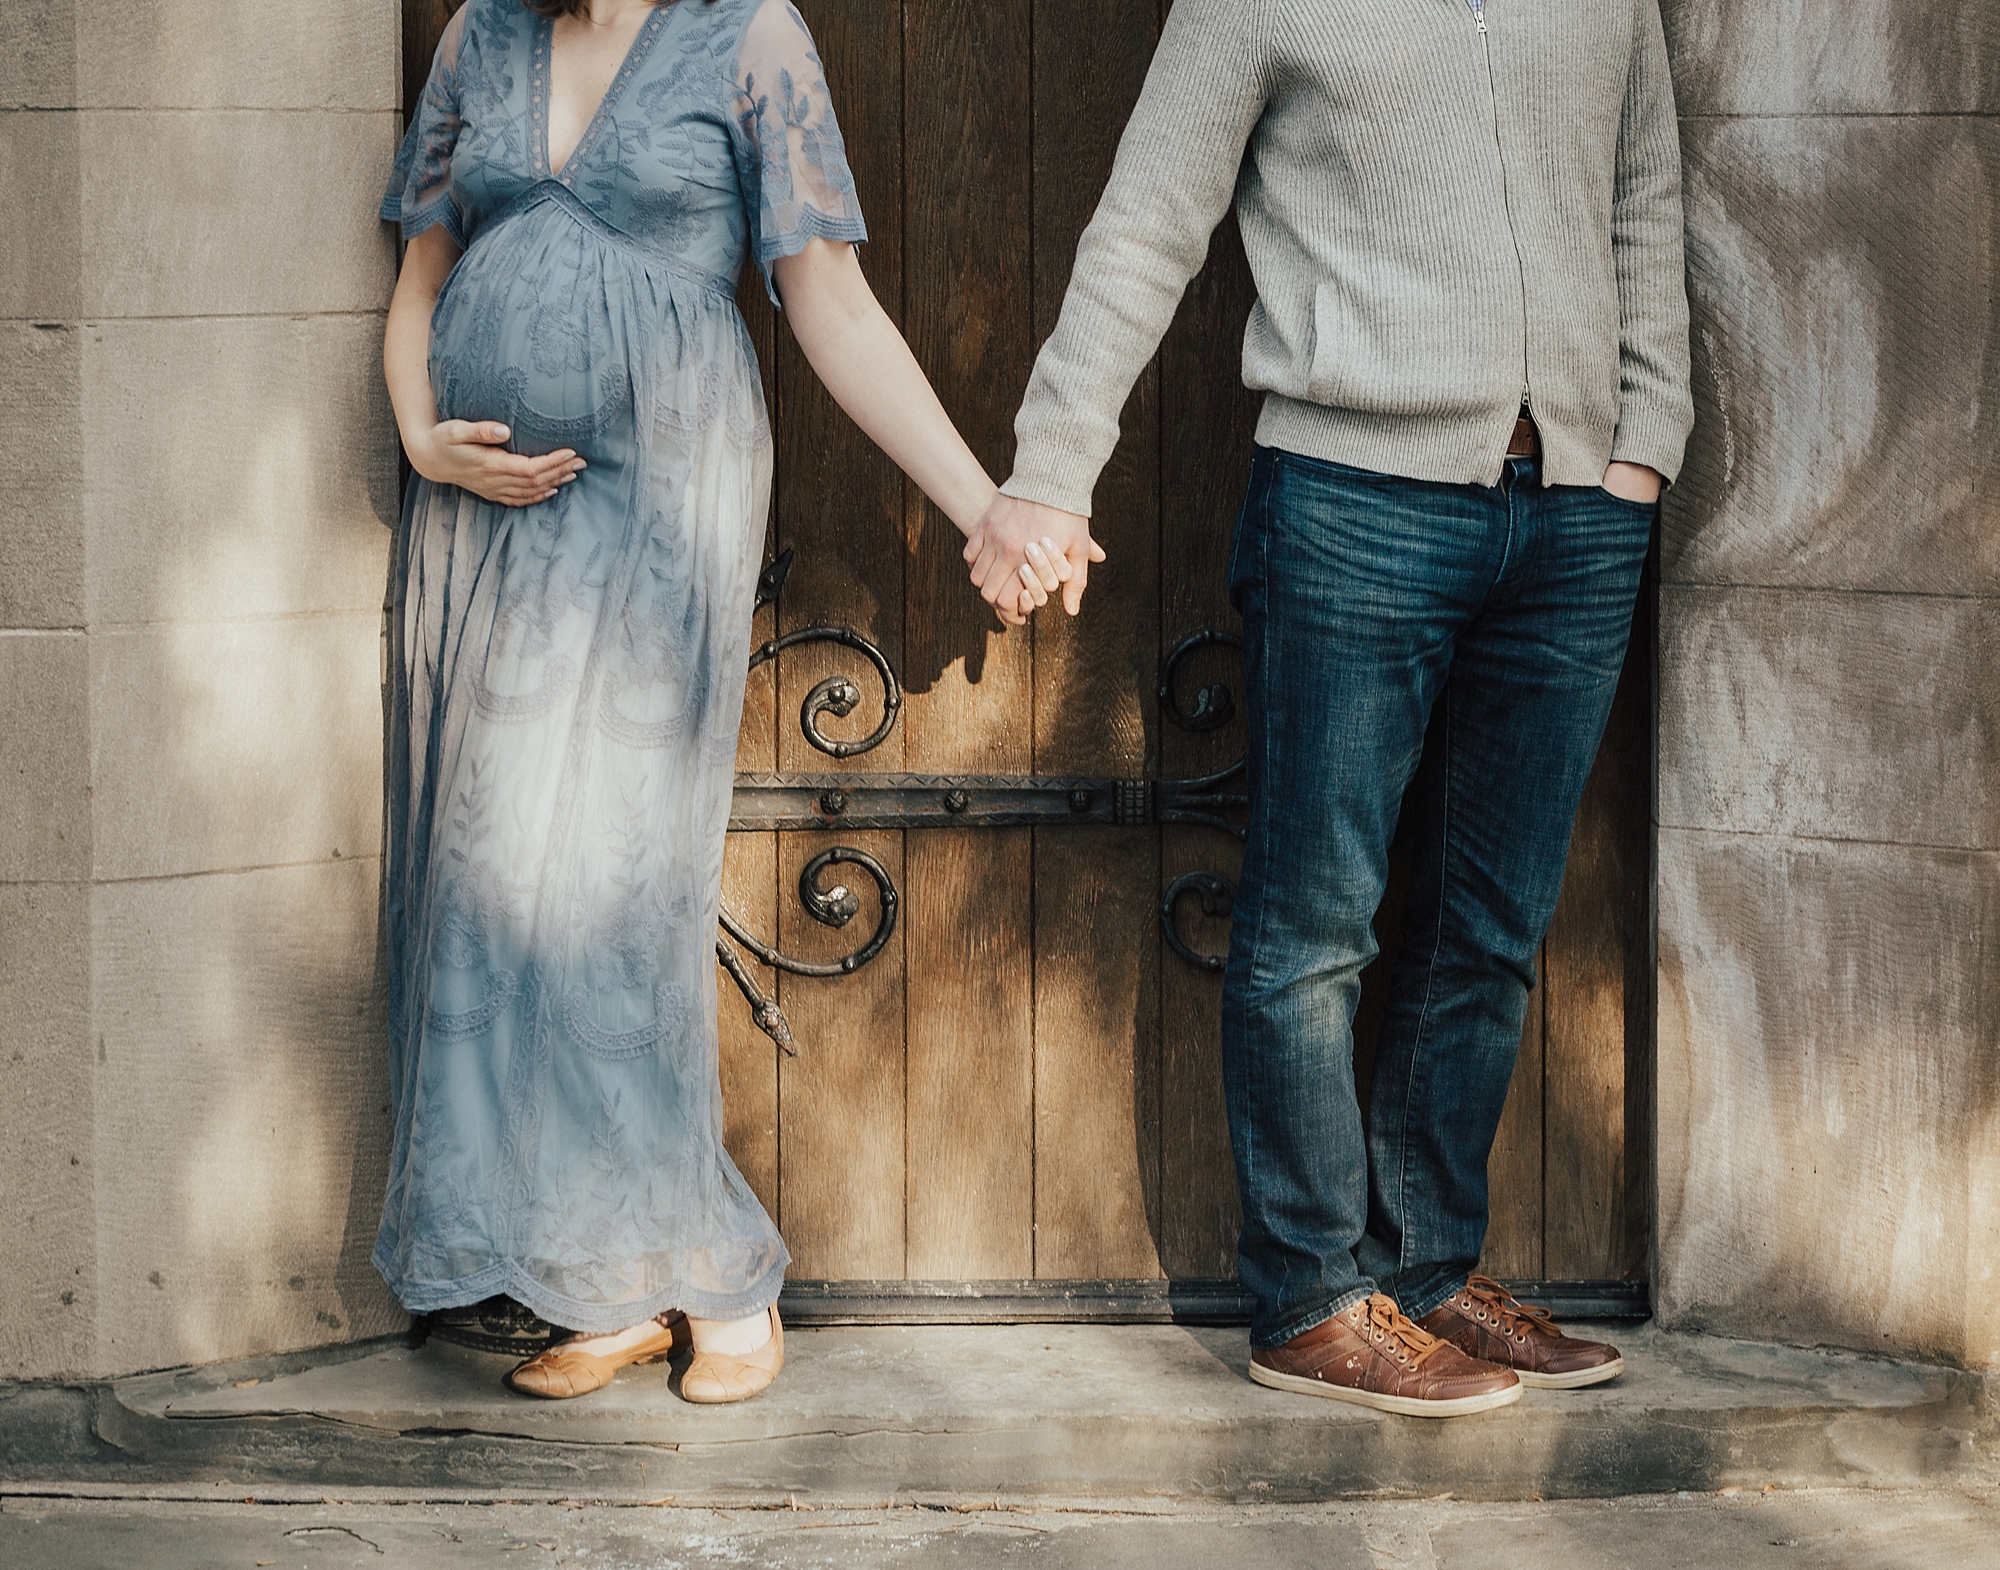 Joe_Mac_Creative_Maternity_Wedding_Engagements_Photography_Philadelphia_Valley_Forge__0037.jpg